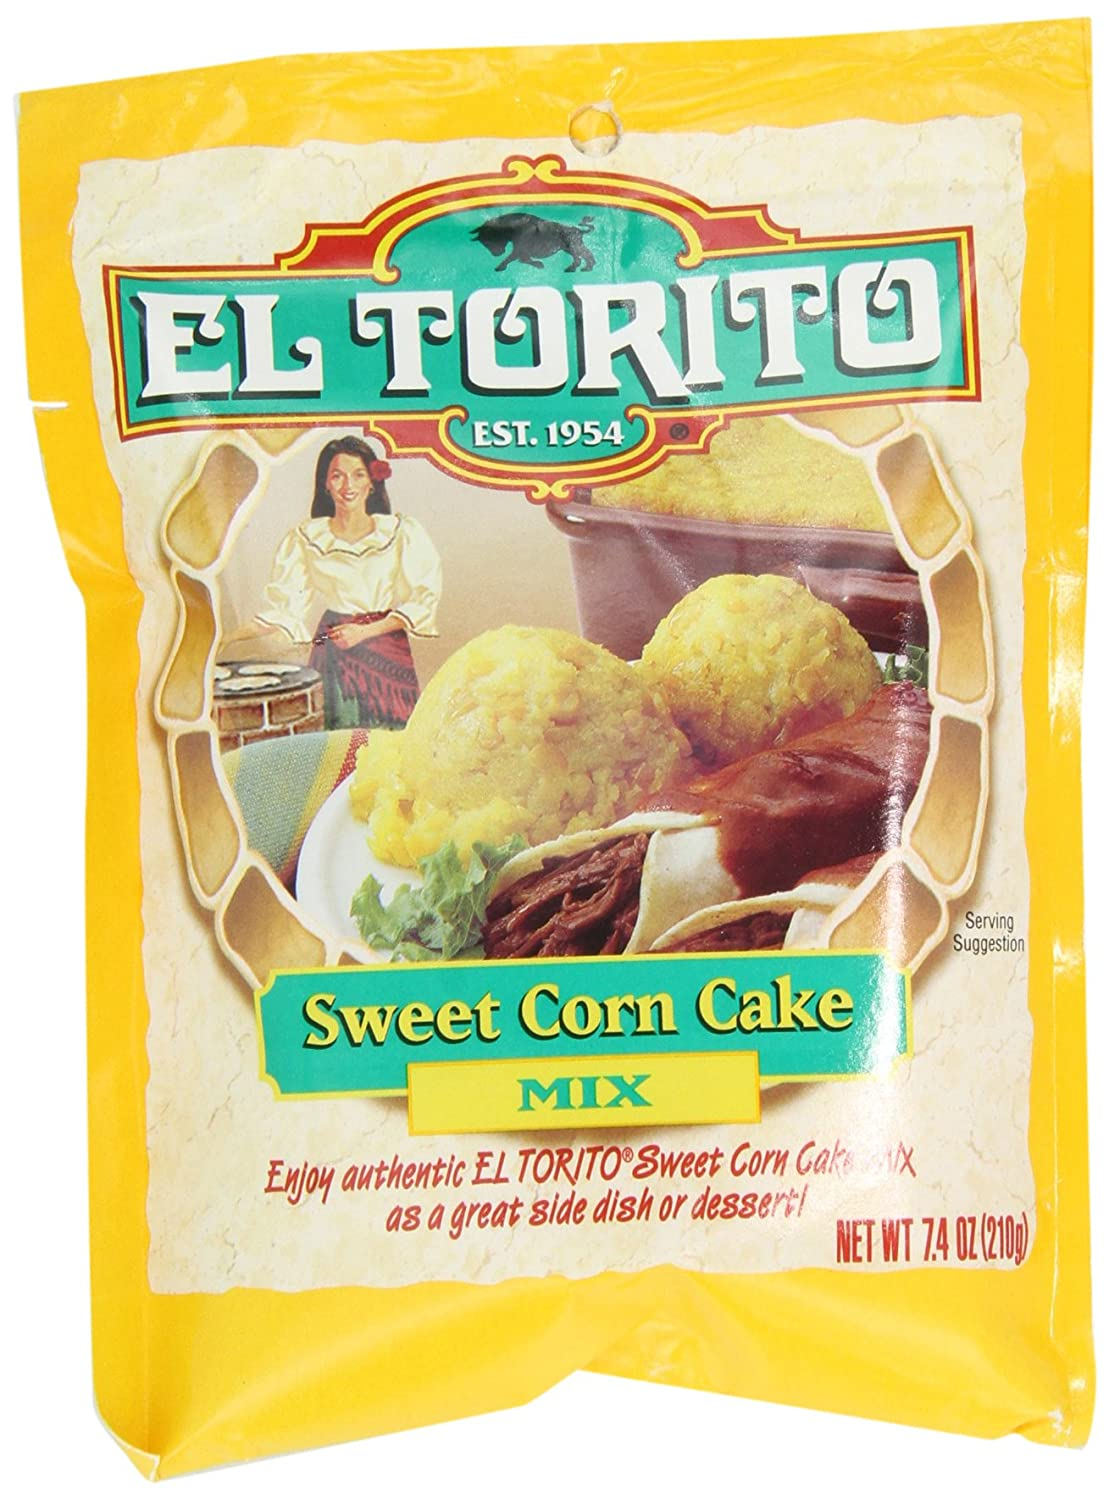 Amazon.com : El Torito Sweet Corn Cake Mix, 7.4-Ounce Packages (Pack of 12) : Grocery & Gourmet Food